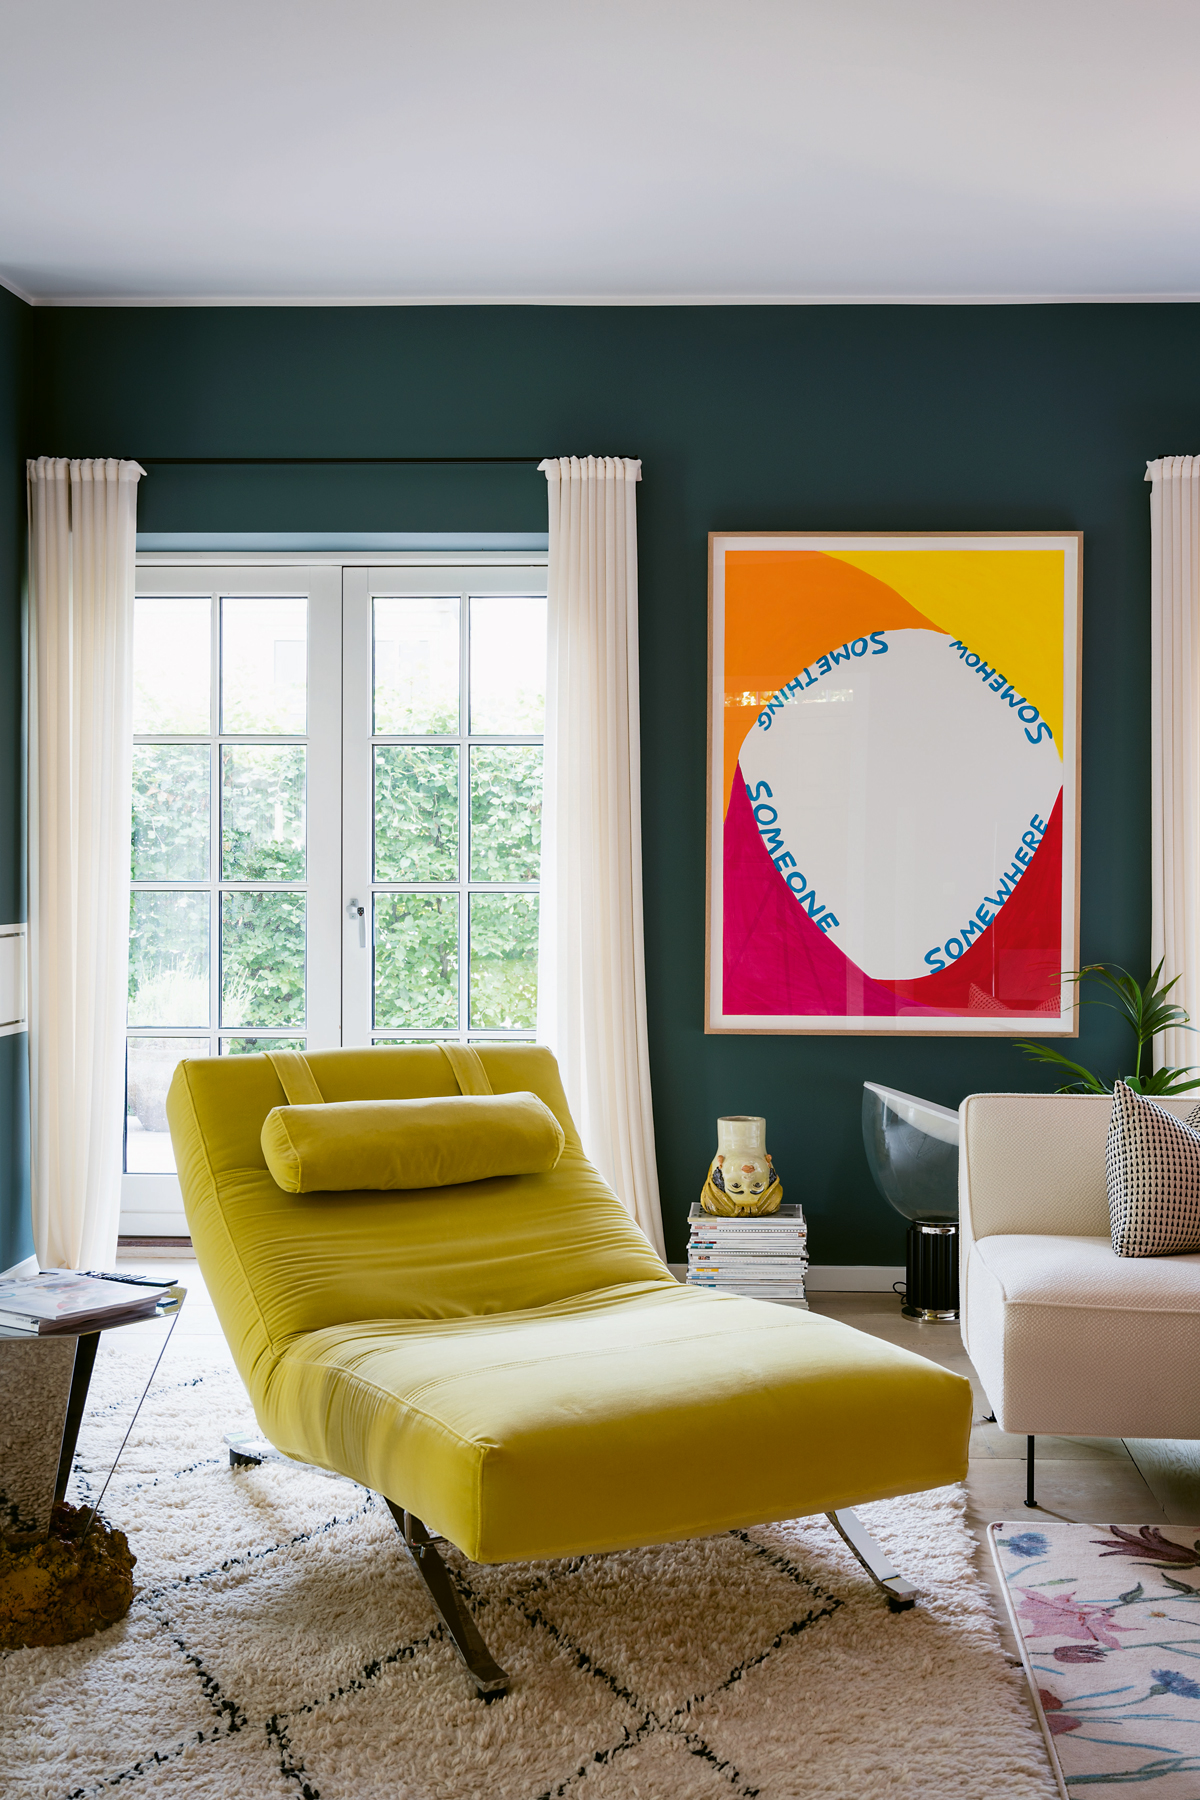 Decorating tips from Farrow & Ball's colour expert